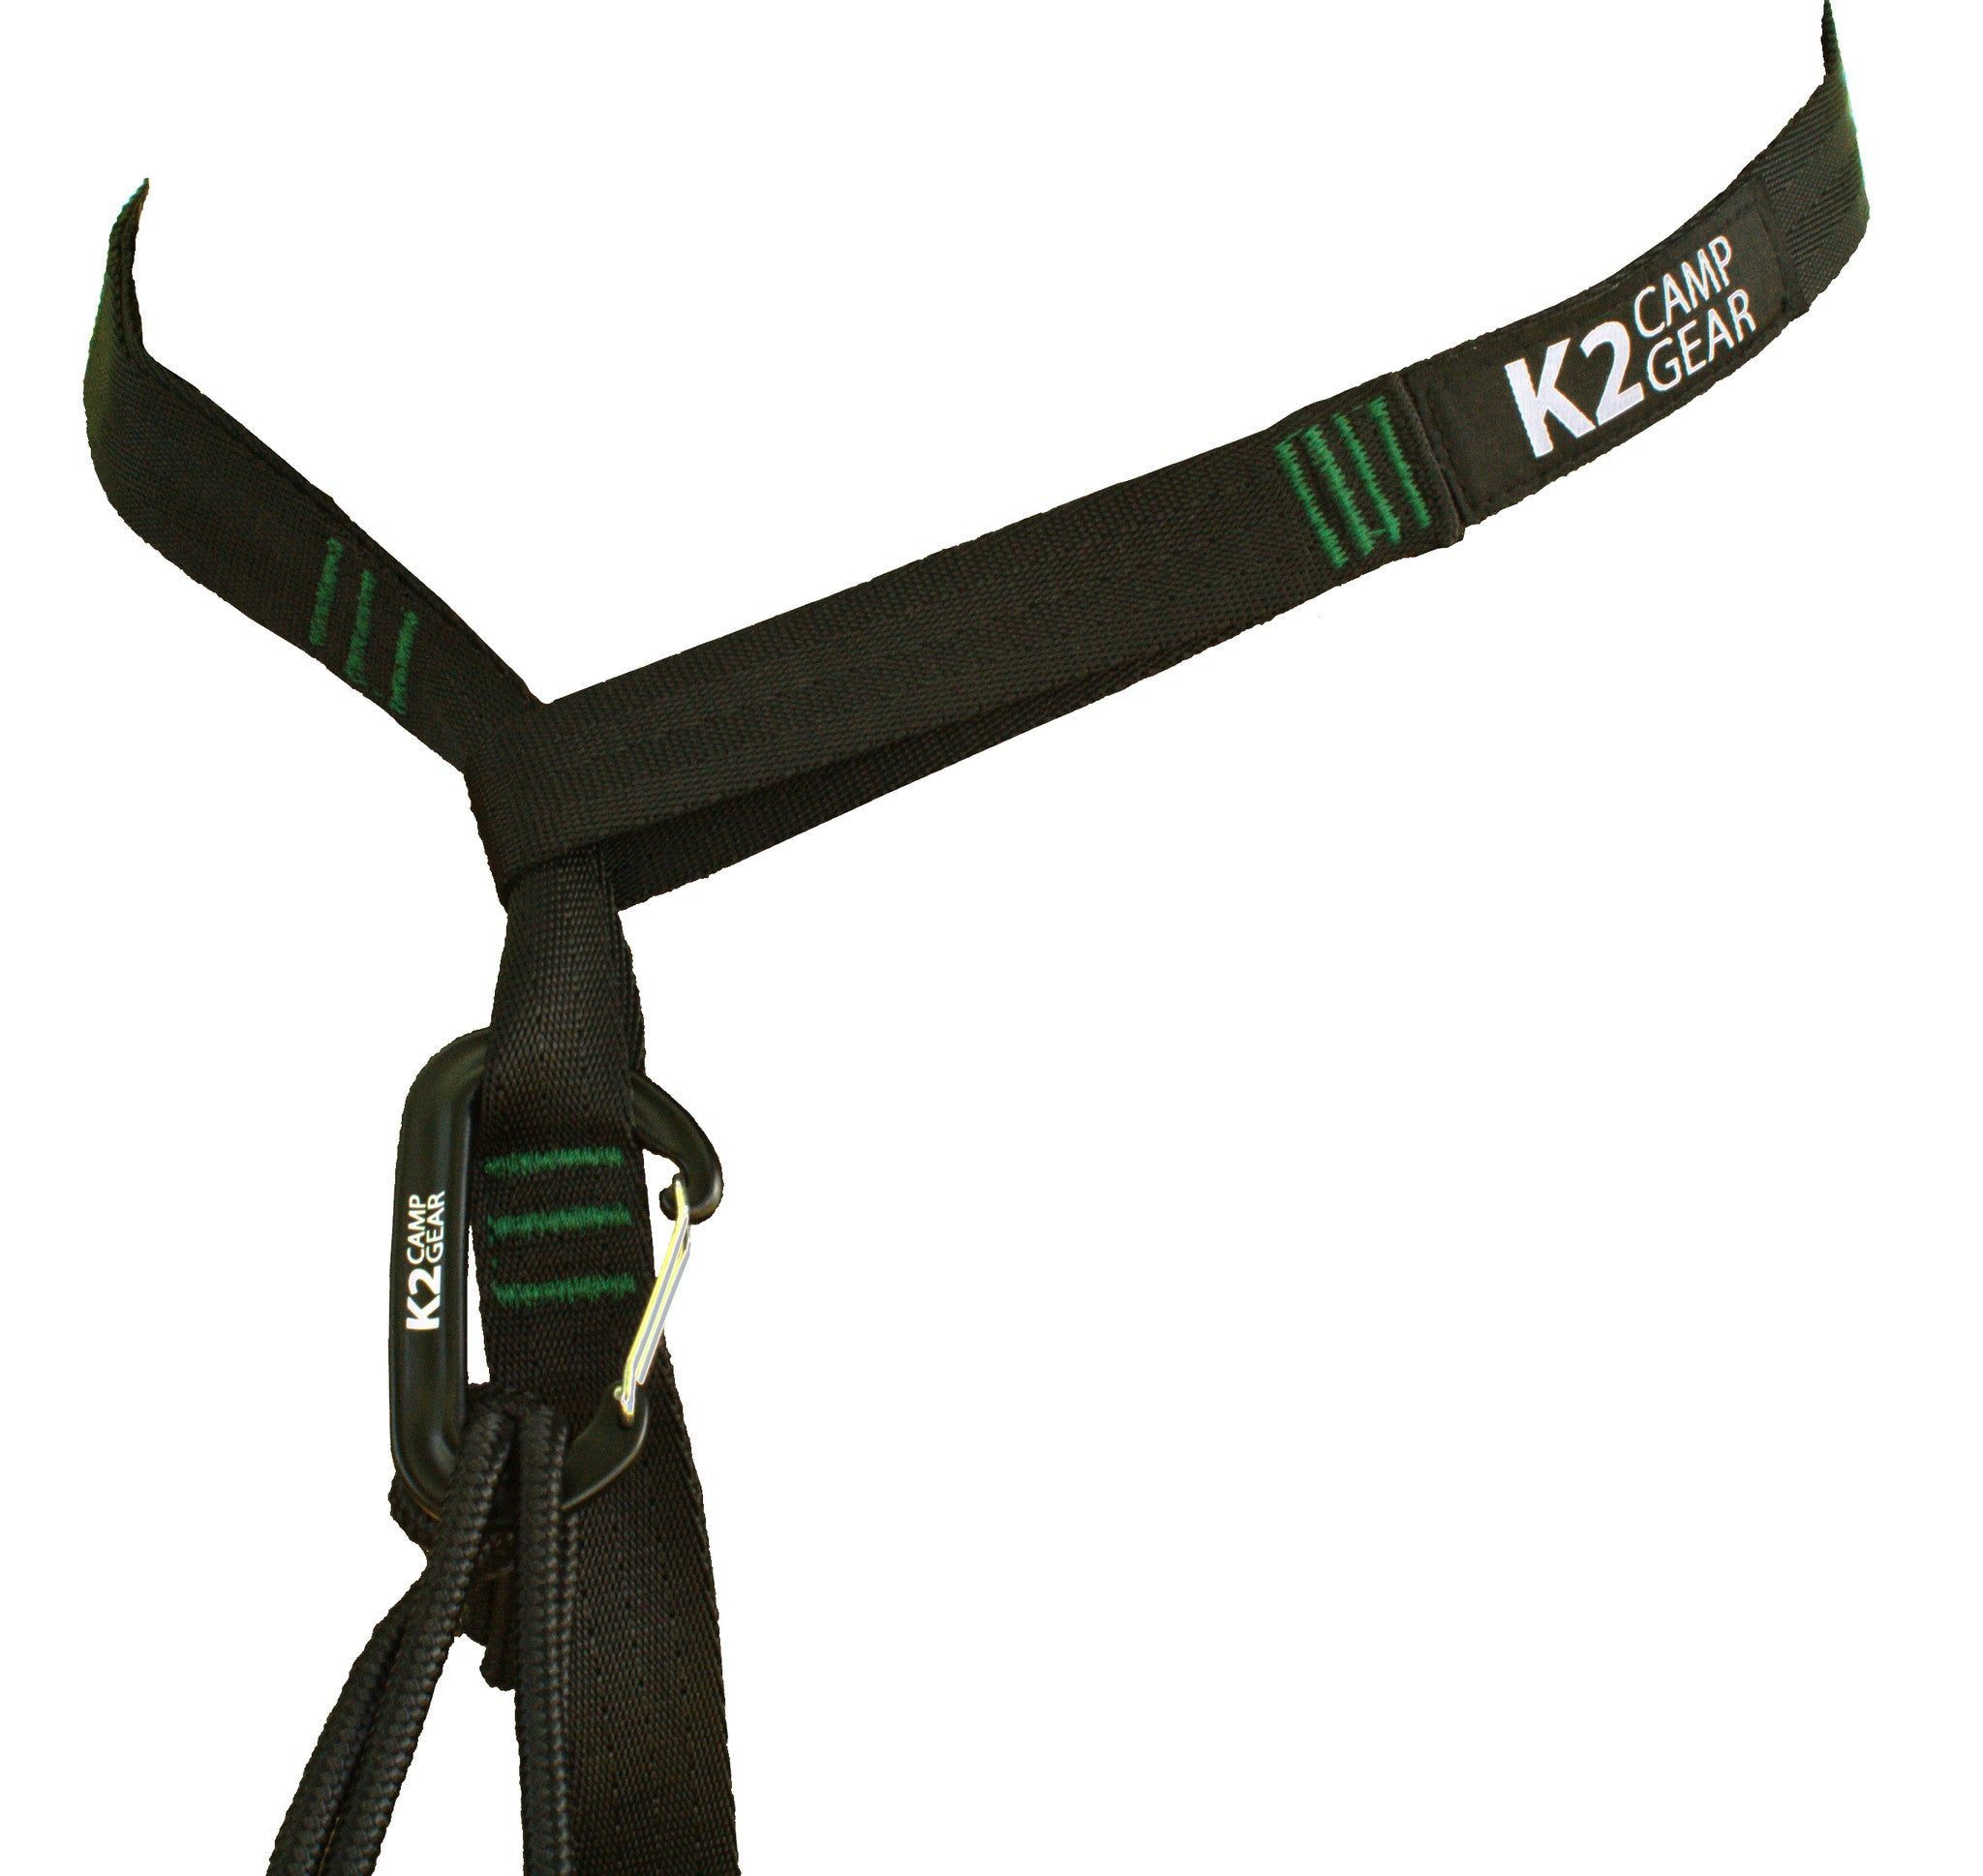 K2 Camp Gear Triple Stitched Camping Hammock Straps Tree Saver Set - 2 Straps and Carrying Case Green/Black - K2campgear - 3